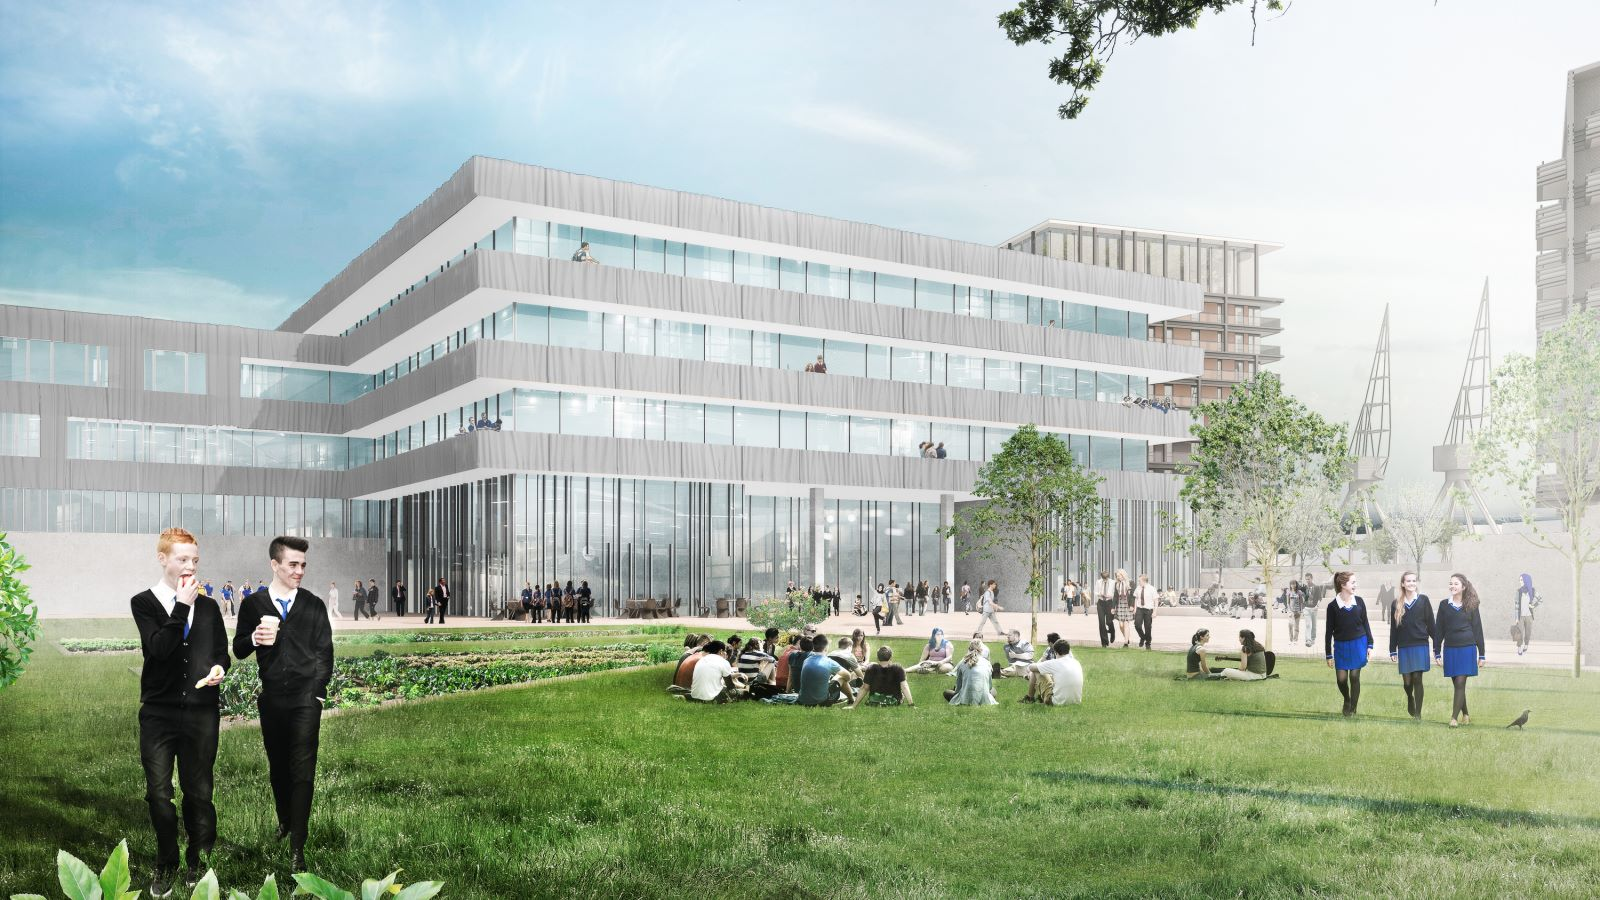 CGI of Students in Uniform, Westferry Printworks Park - Mace Group